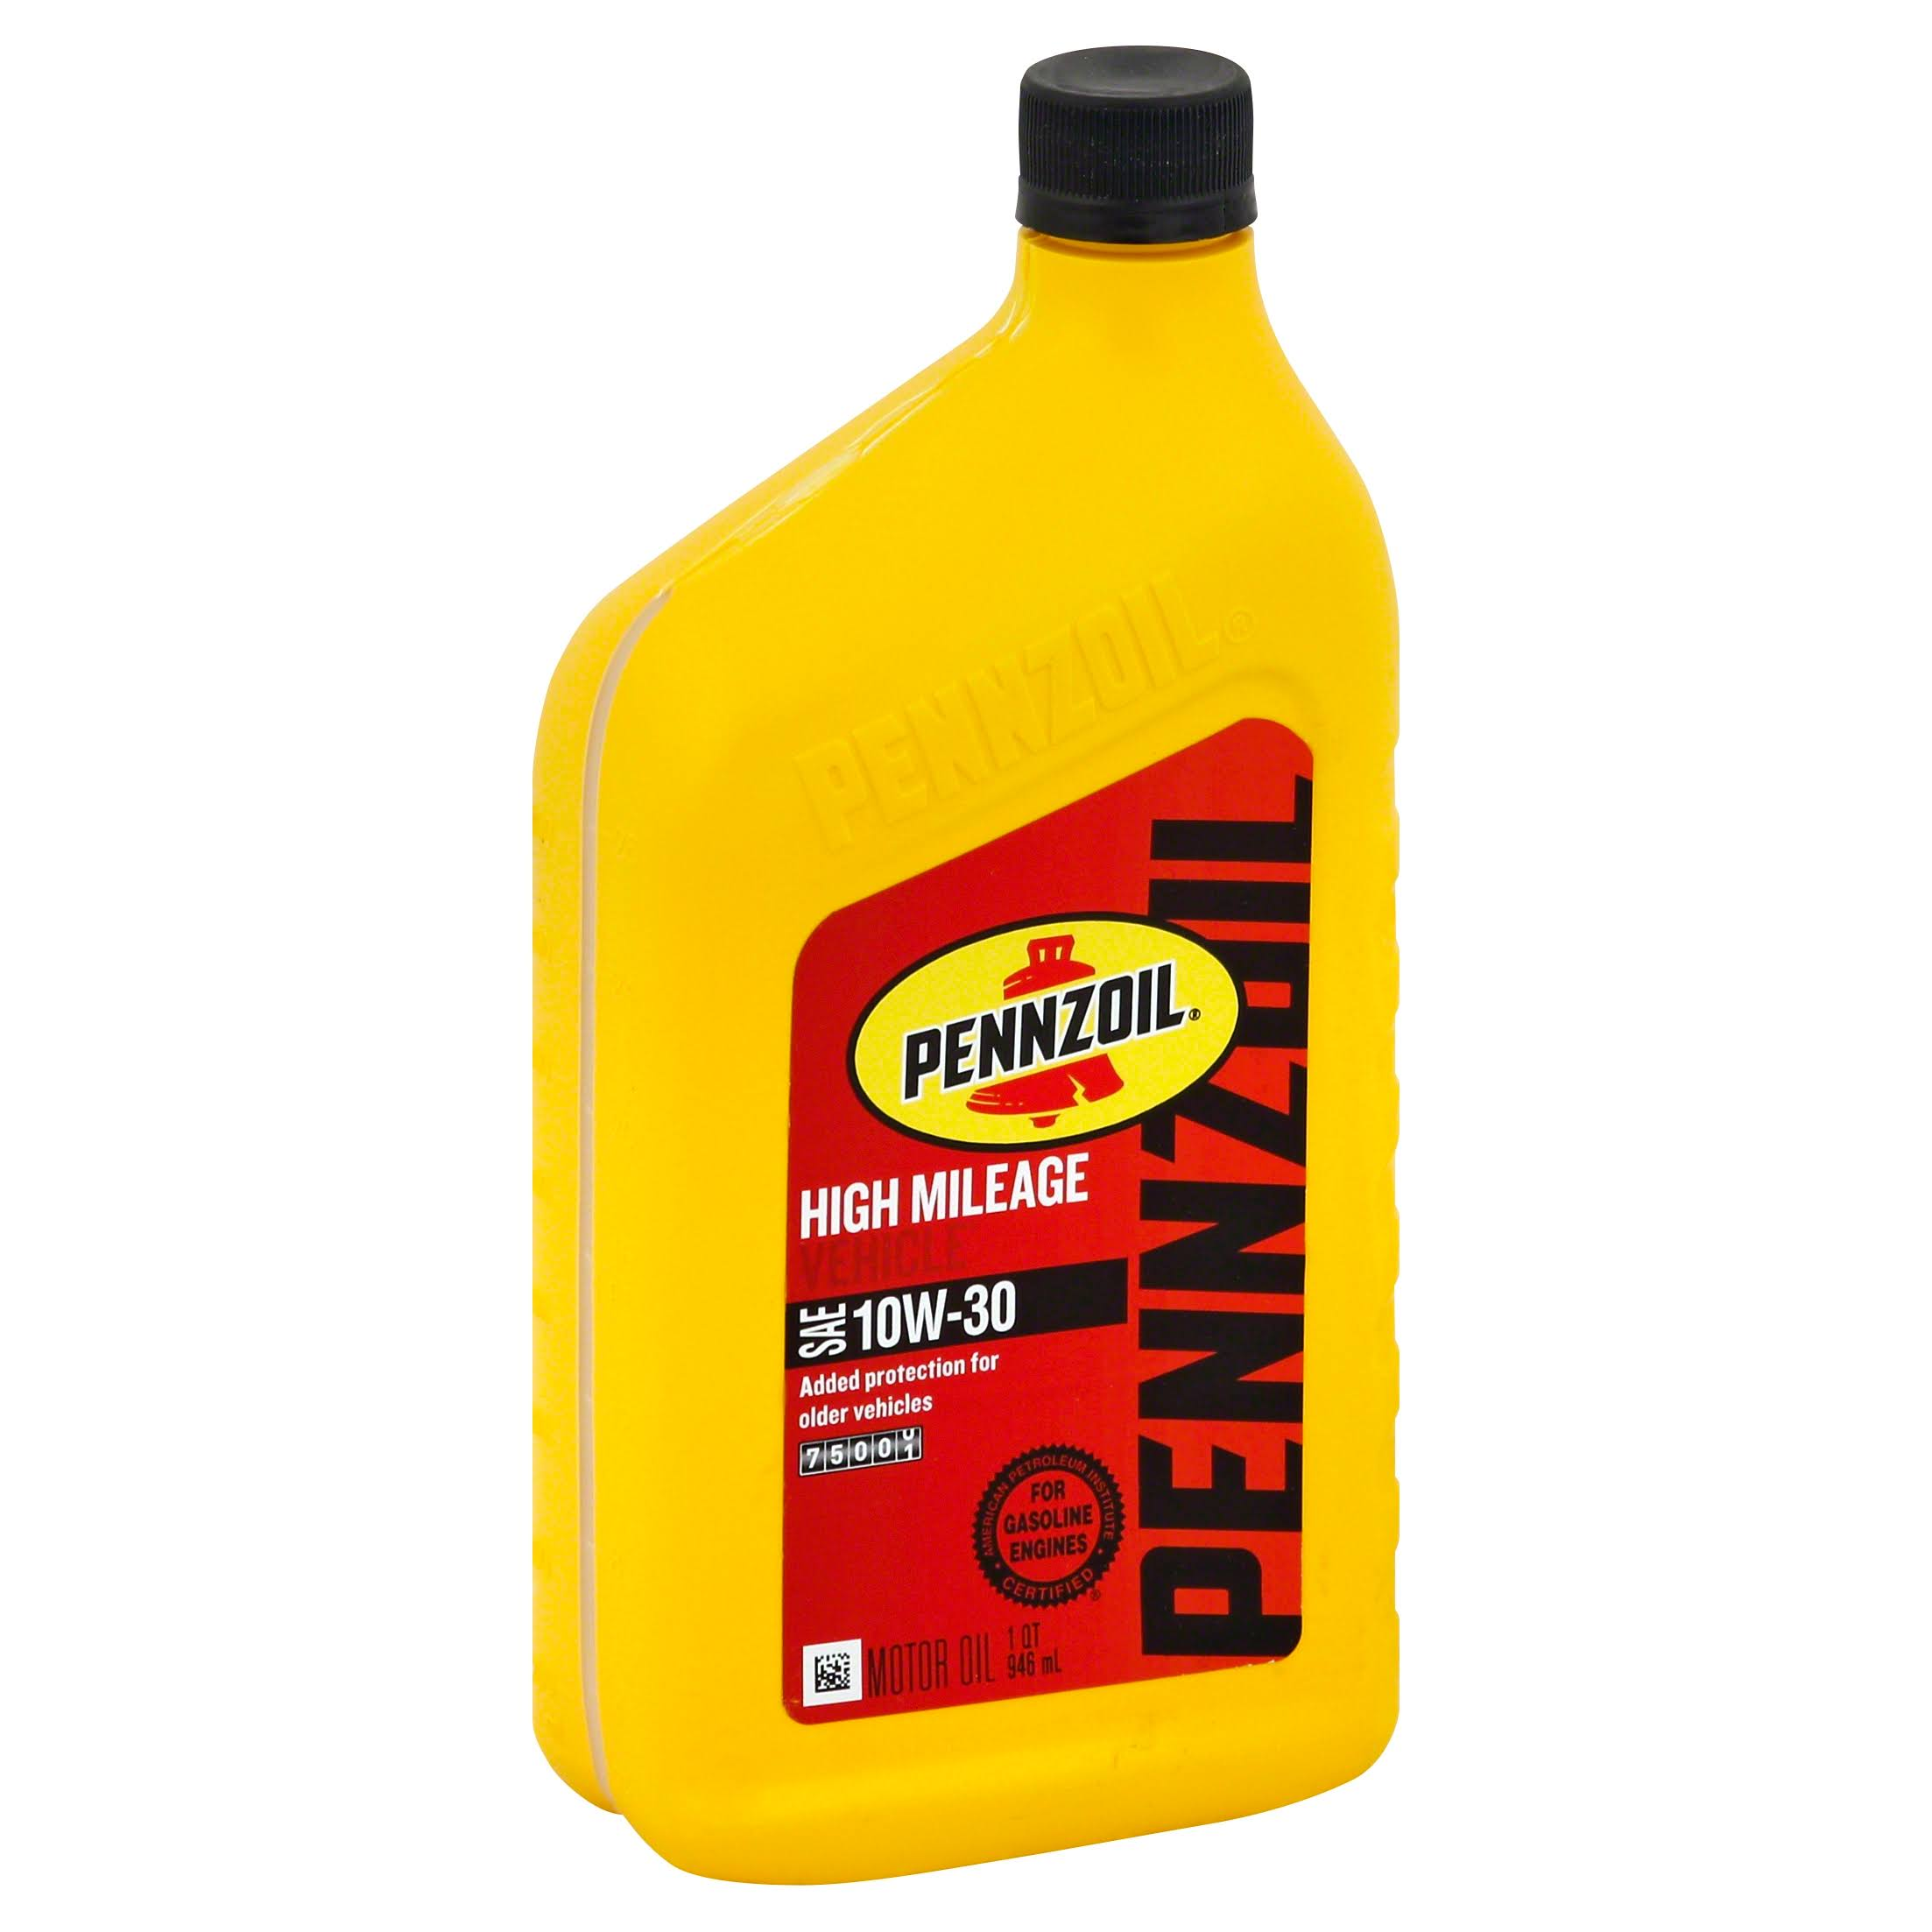 Pennzoil 160554 High Mileage Vehicle 10W30 Motor Oil - 1qt